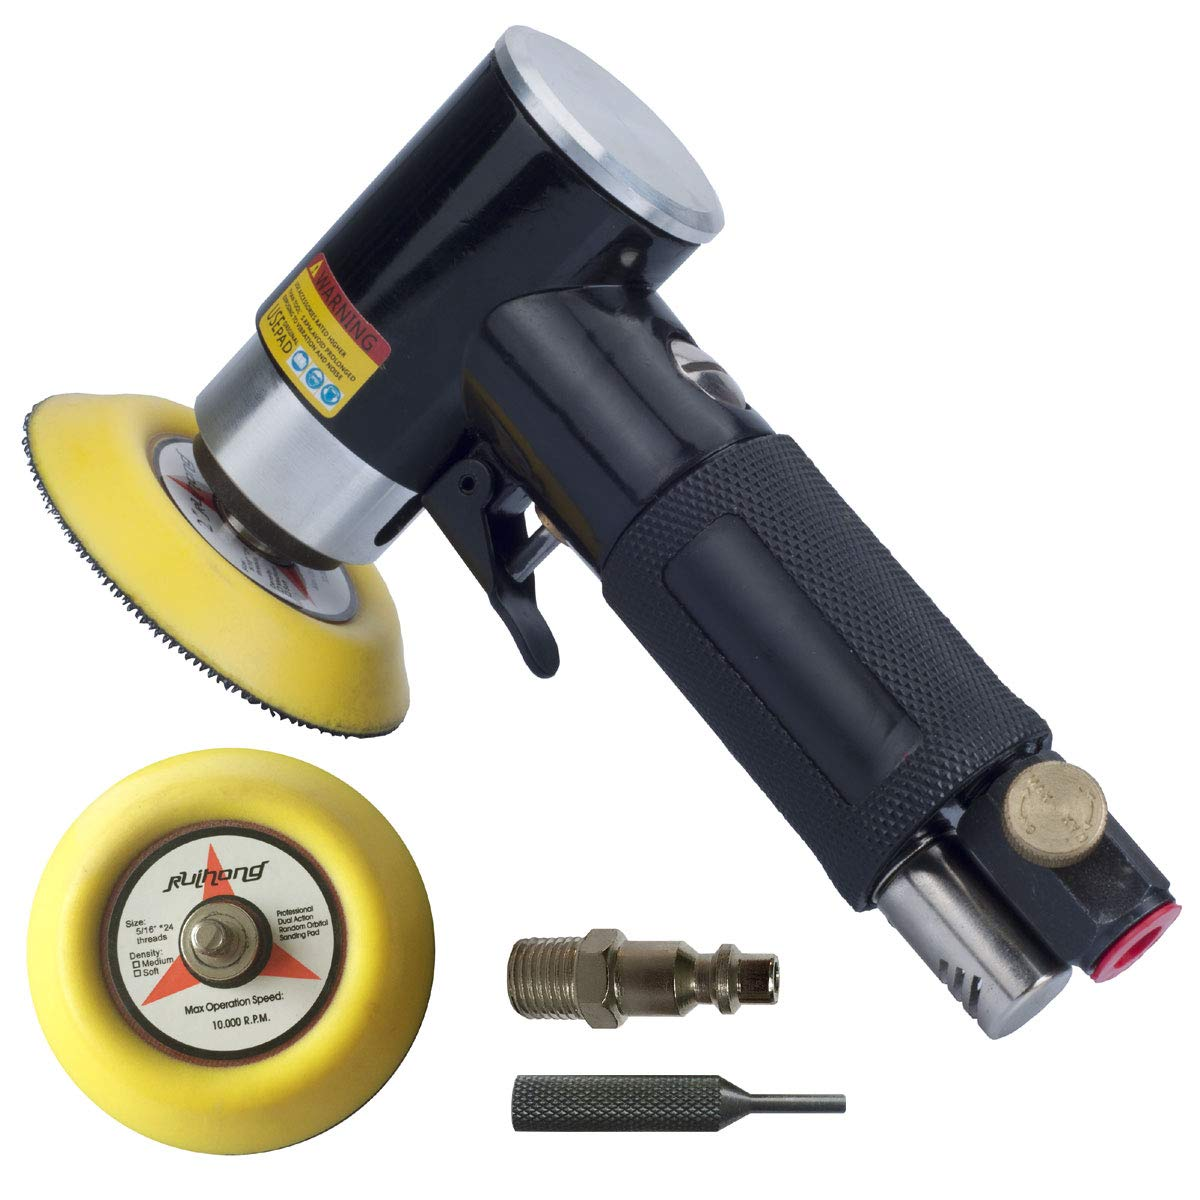 2'' and 3'' Random Orbital Air Sander, Pneumatic Sander for auto sanding tools, Dual Action Polisher, air angle sander, pneumatic angle sander by PROSHI